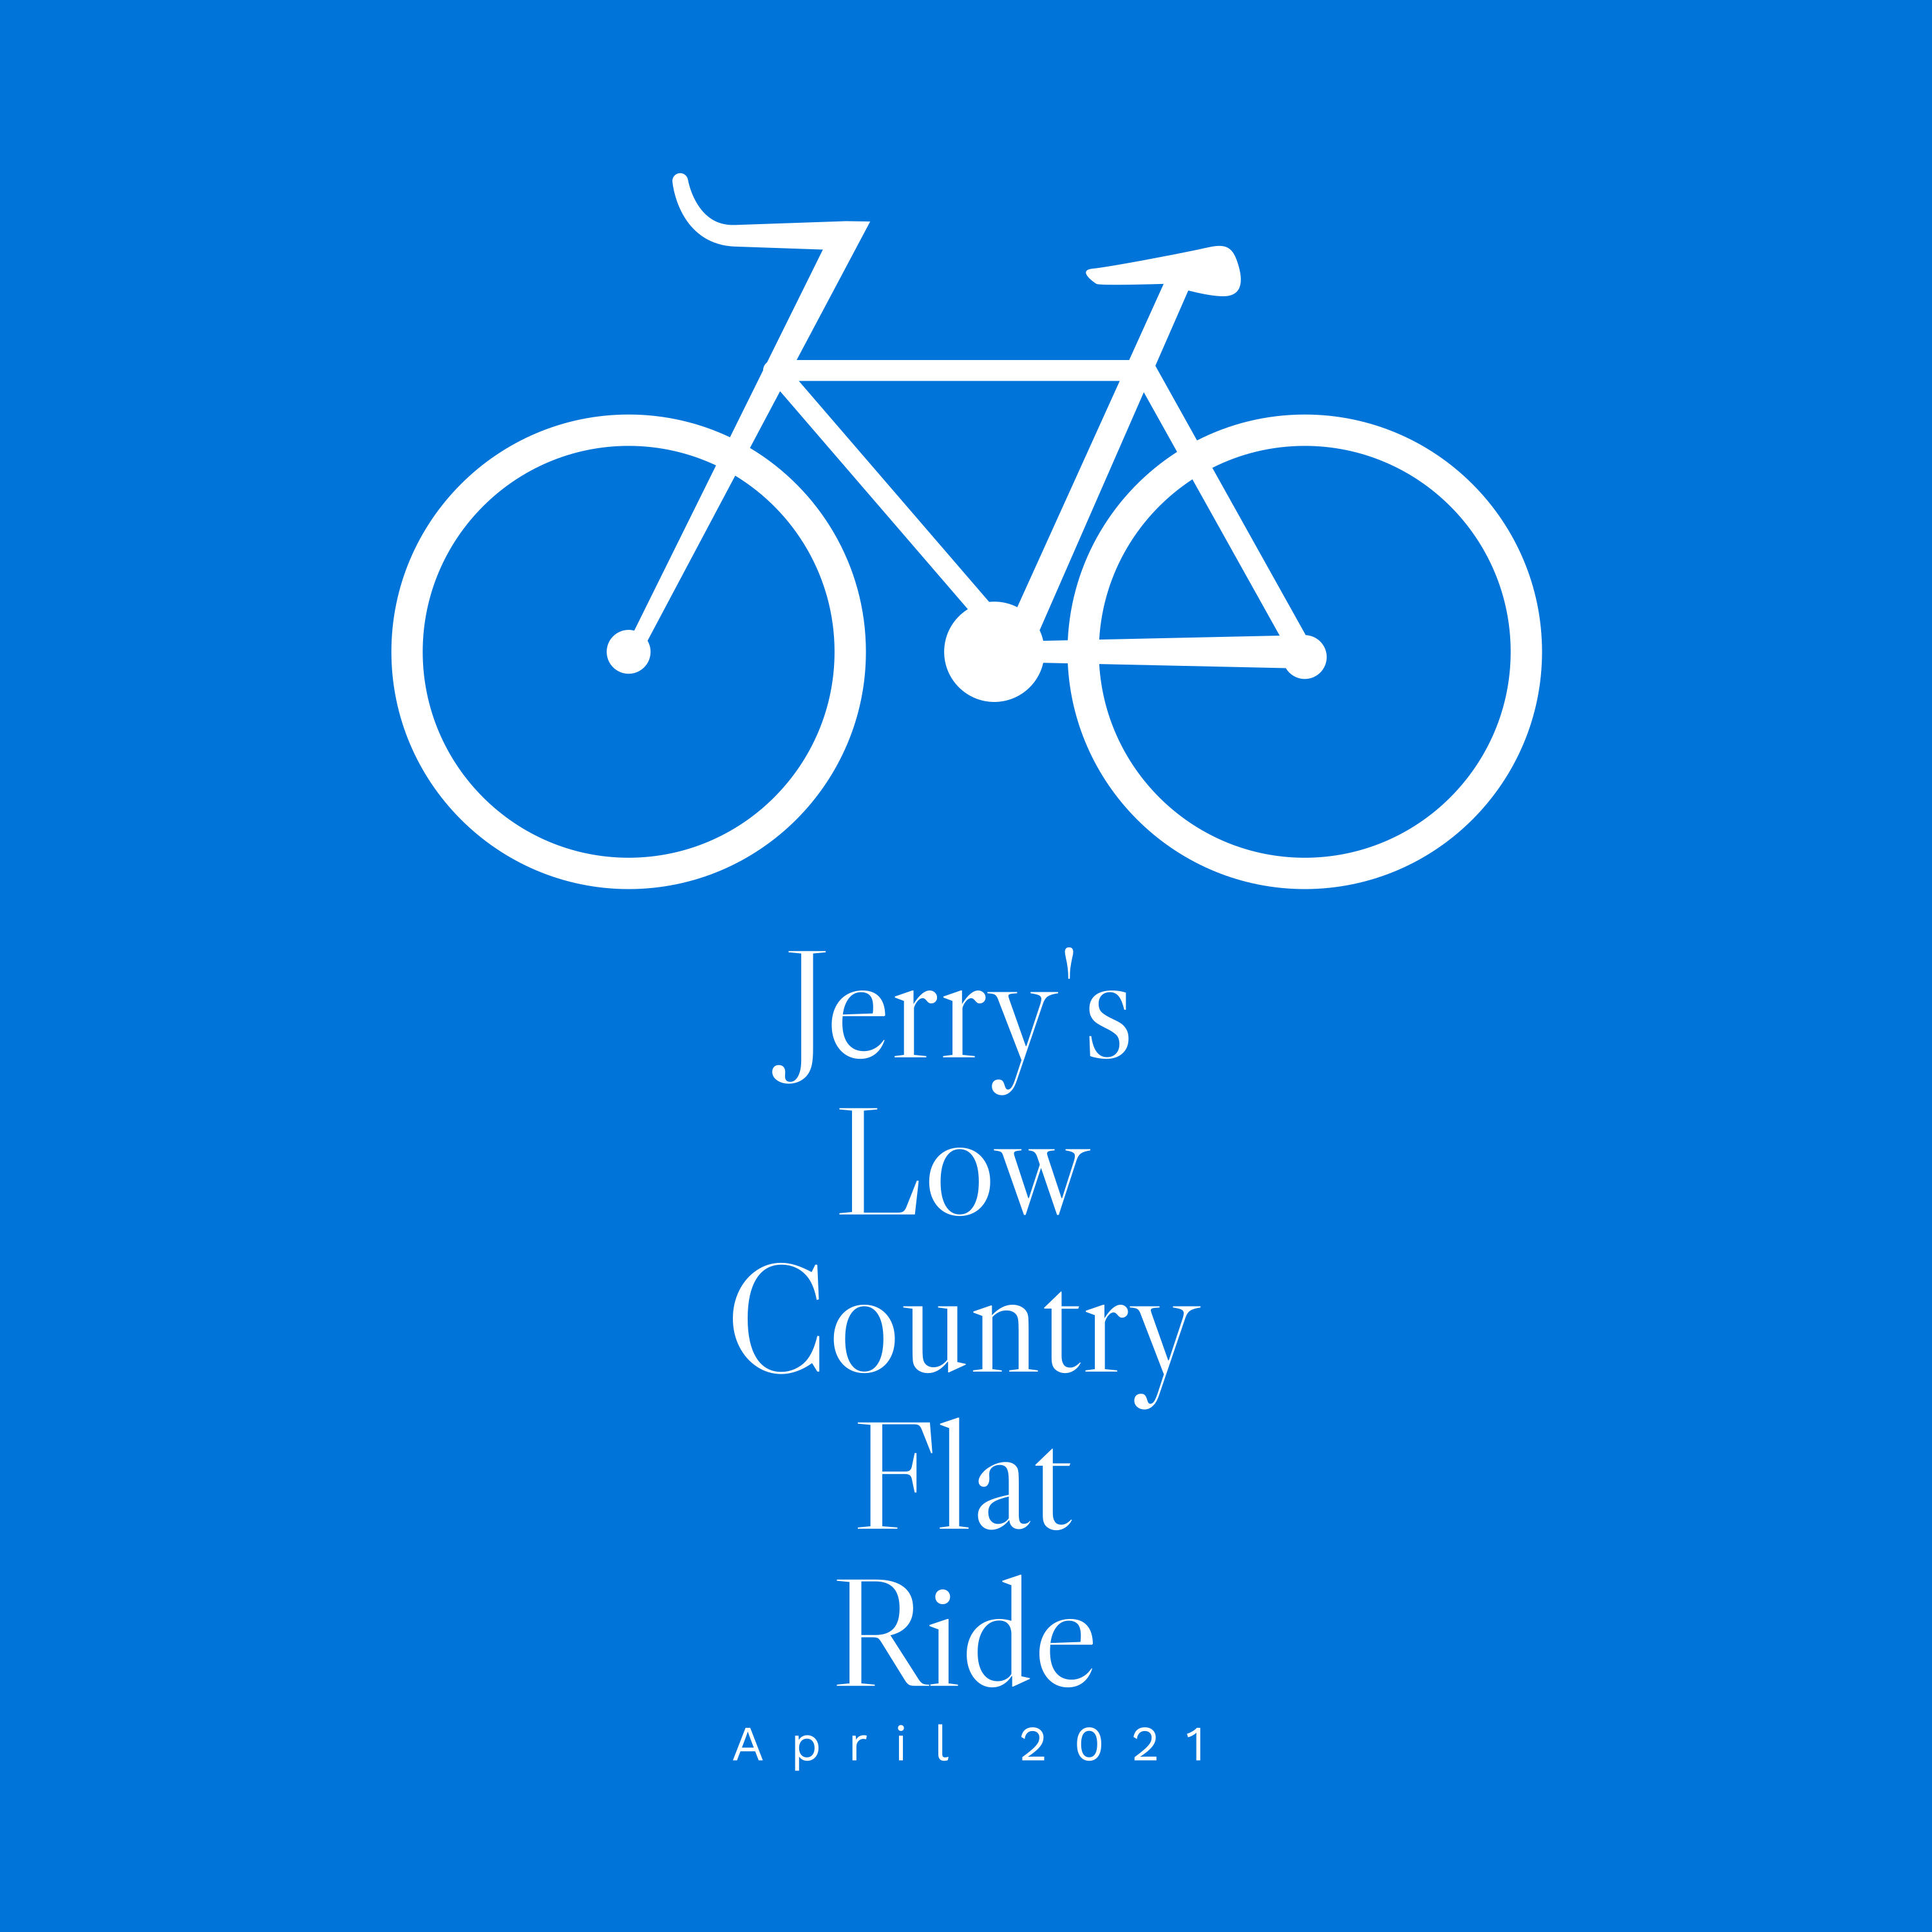 Jerry's Low Country Flat Ride